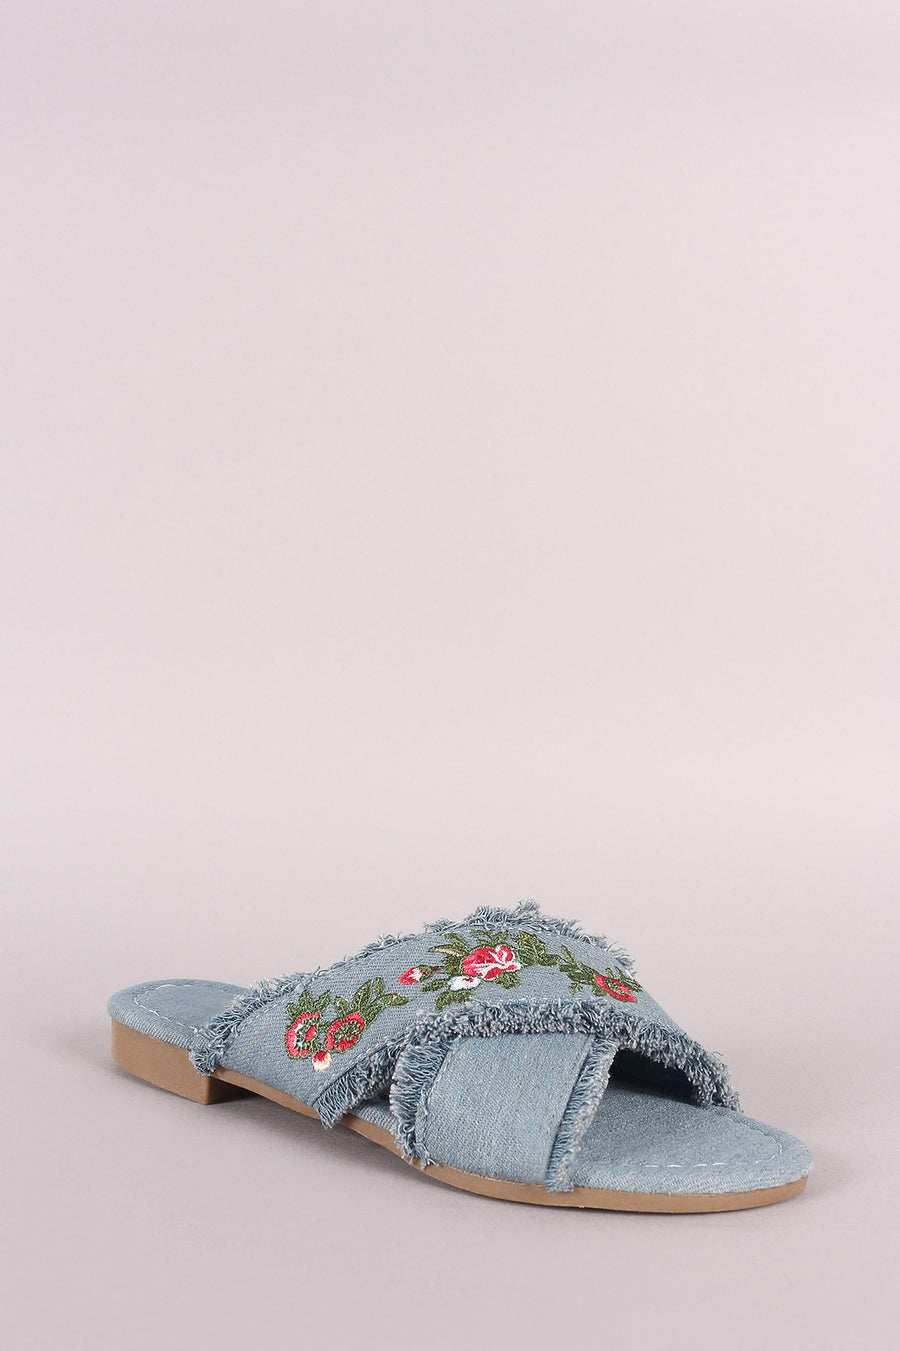 Arlo Frayed Denim Floral Embroidered Crisscross Slide Sandal Photo - Plush Boutique